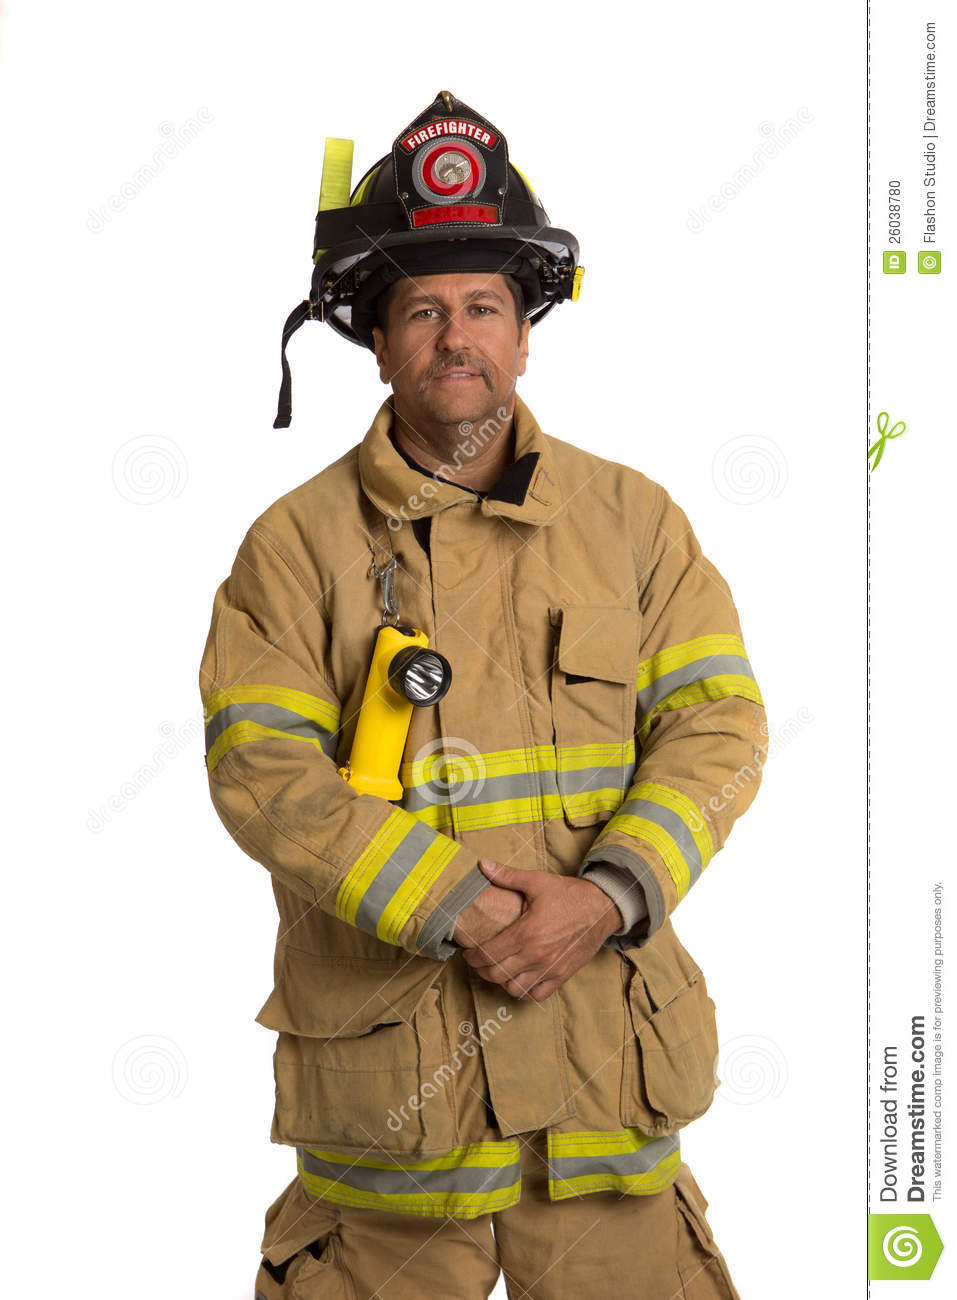 Serious looking confident firefighter standing portrait isolated on ...